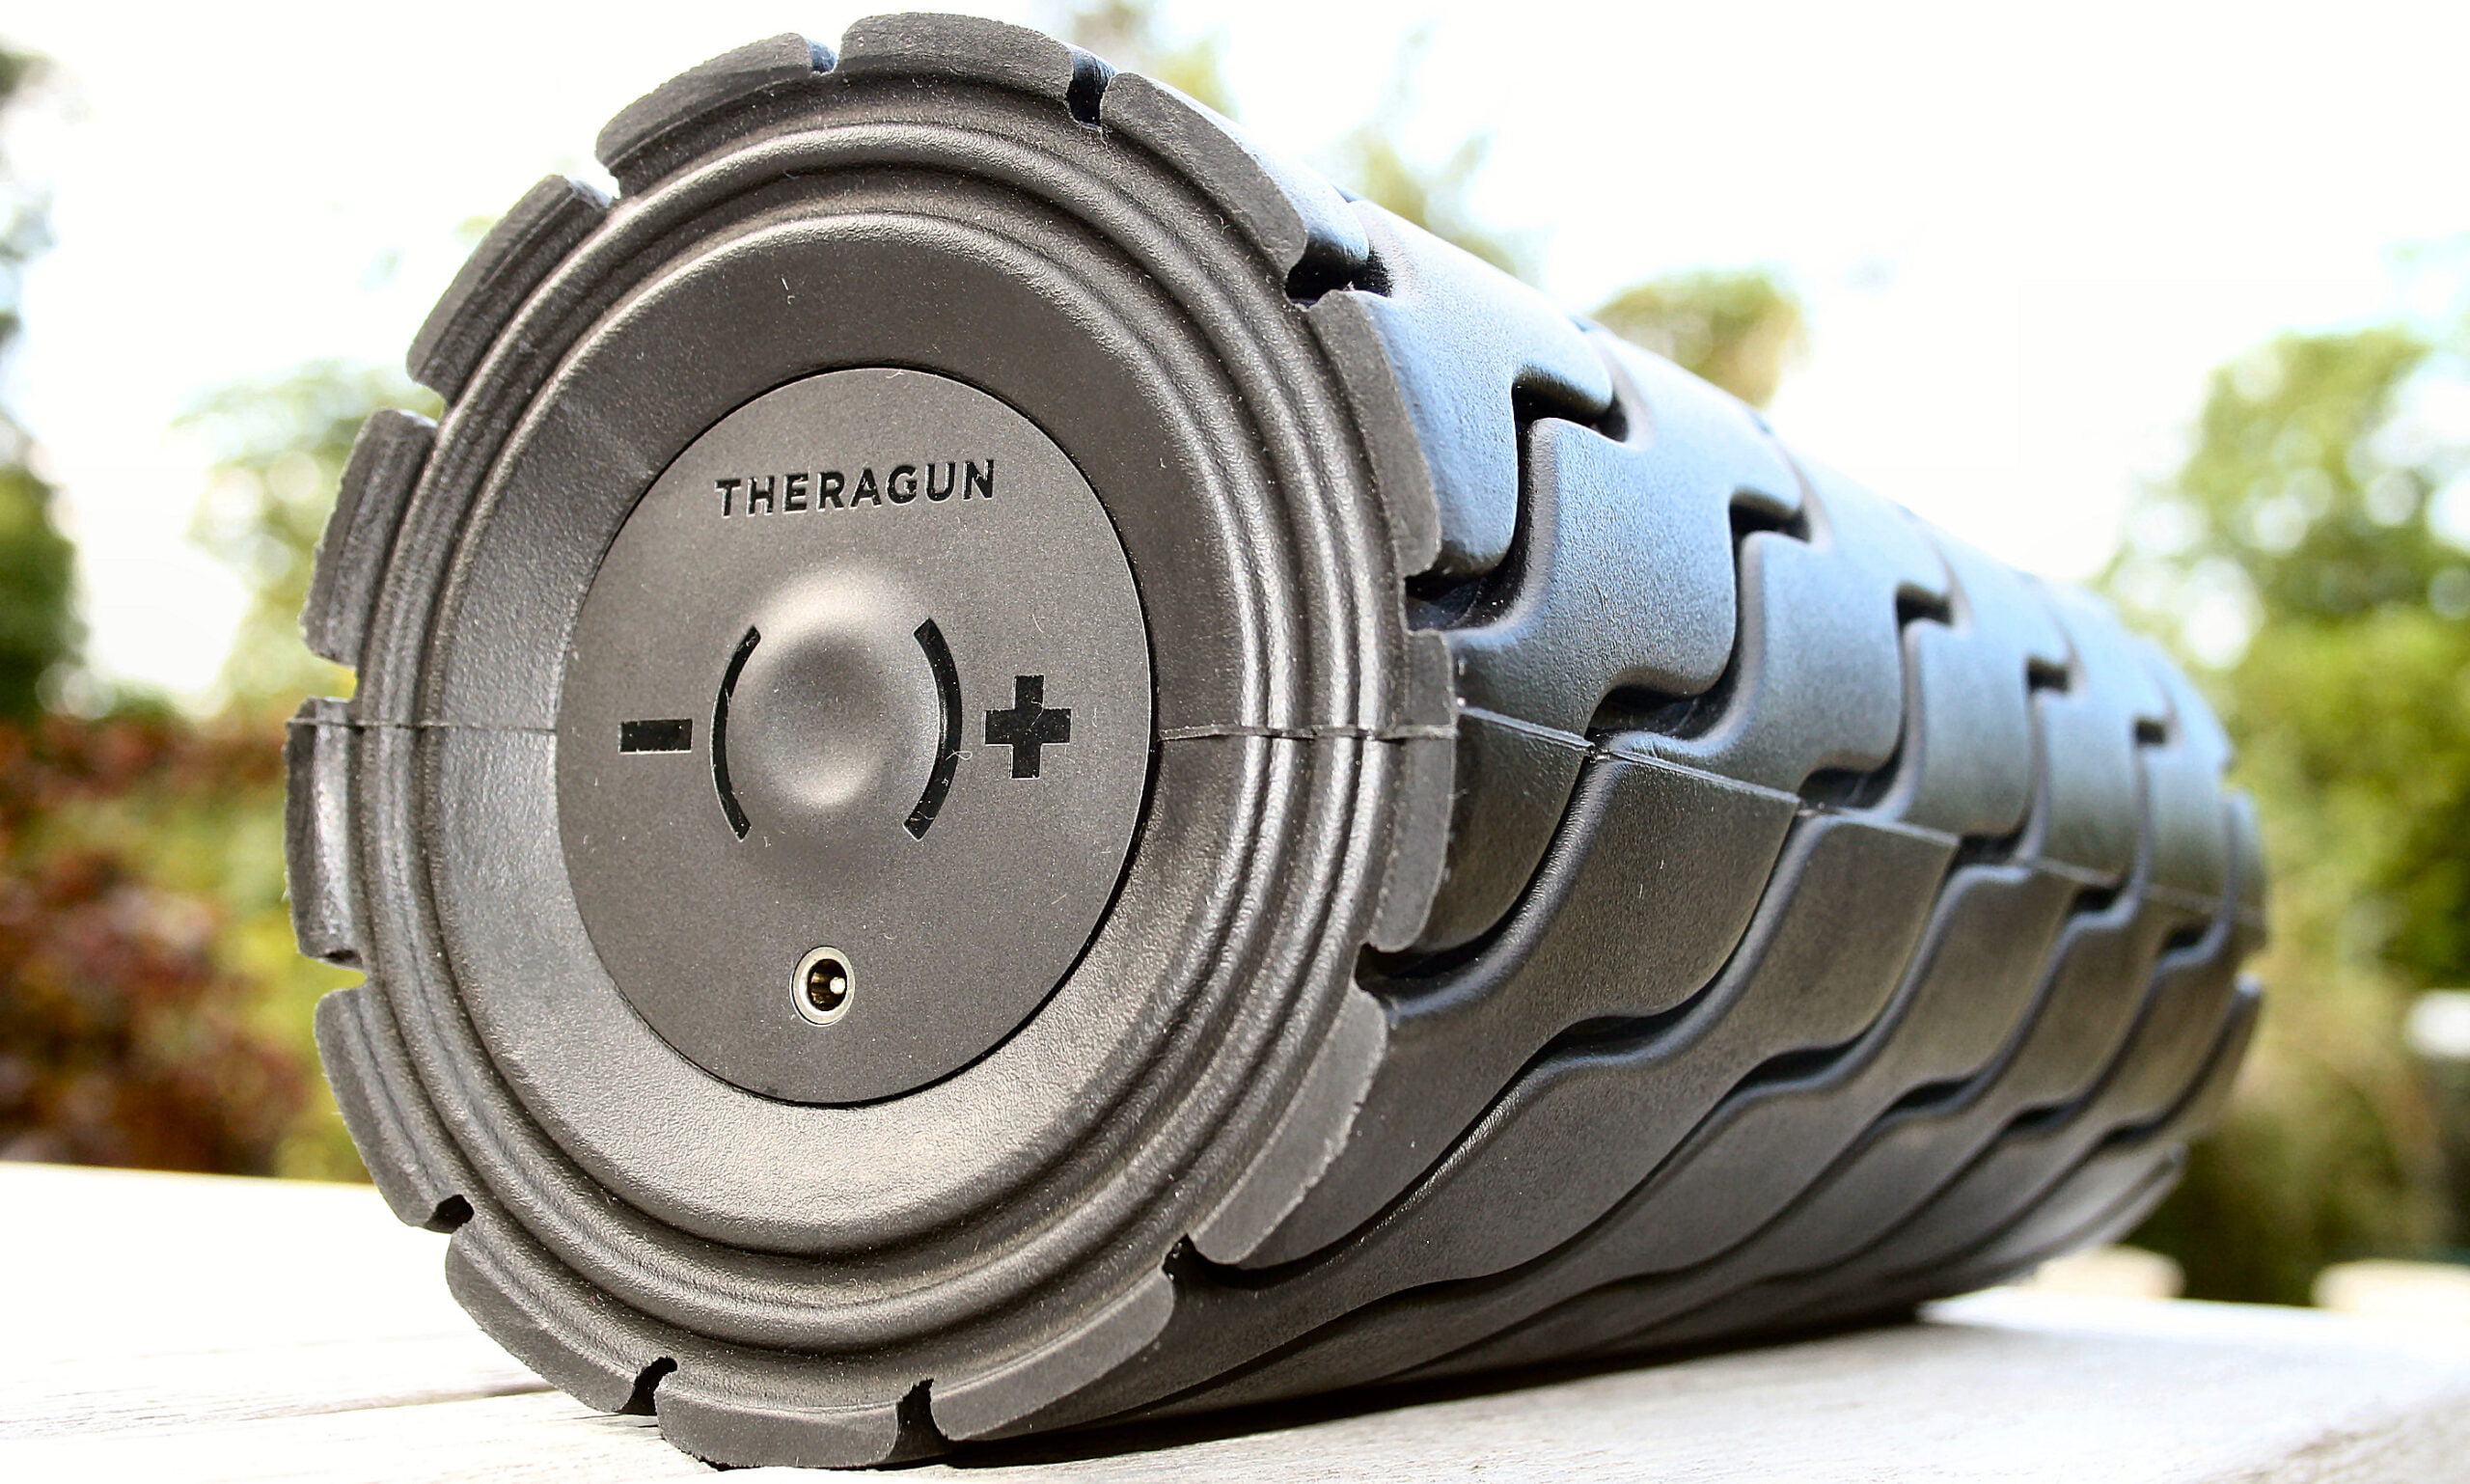 Theragun Wave Roller Review - Therabody's Smart Foam Roller